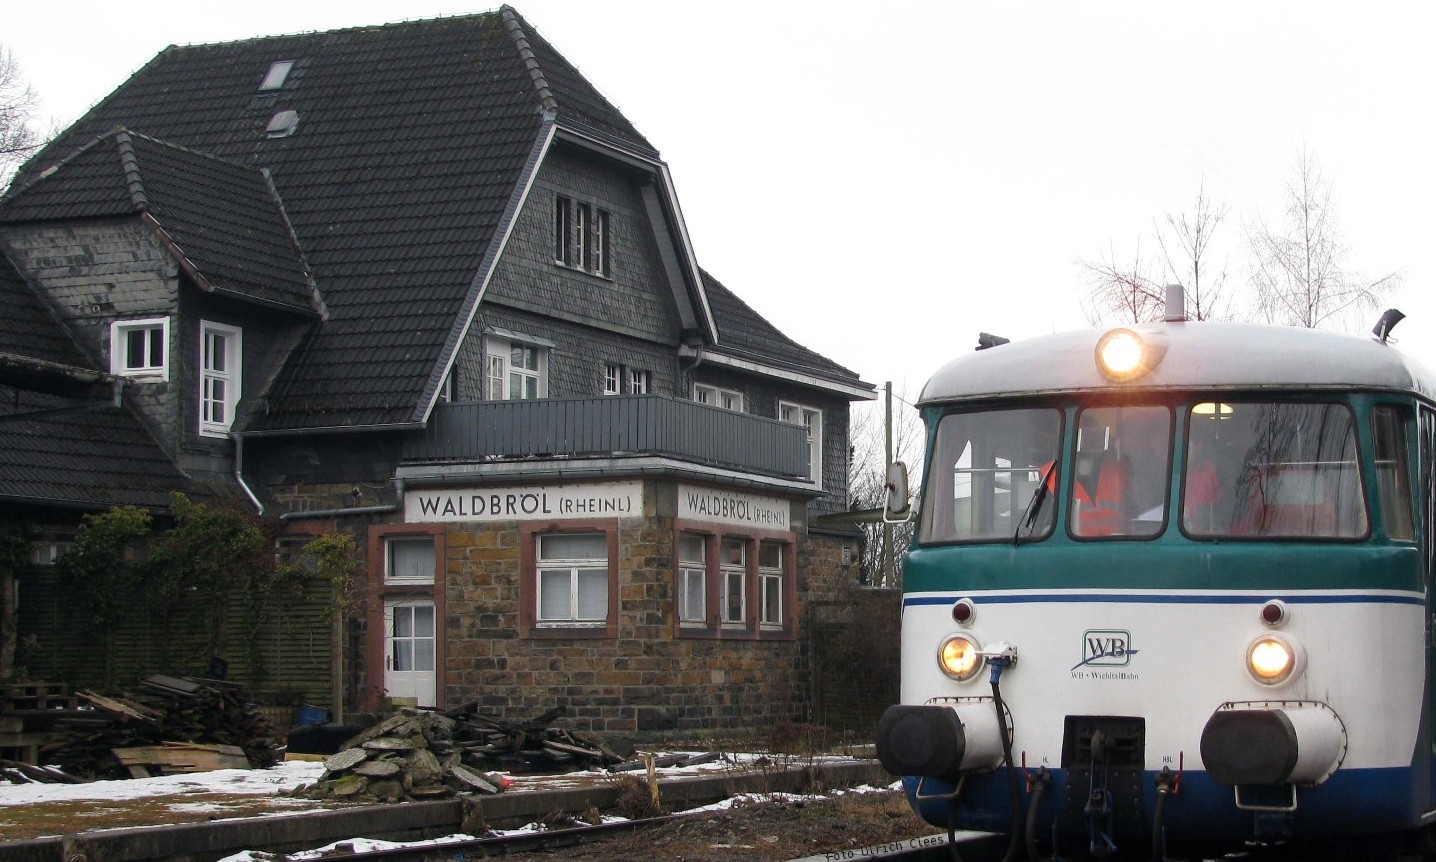 Waldbröl Station in winter 2009/10 (Photo Uli Clees)